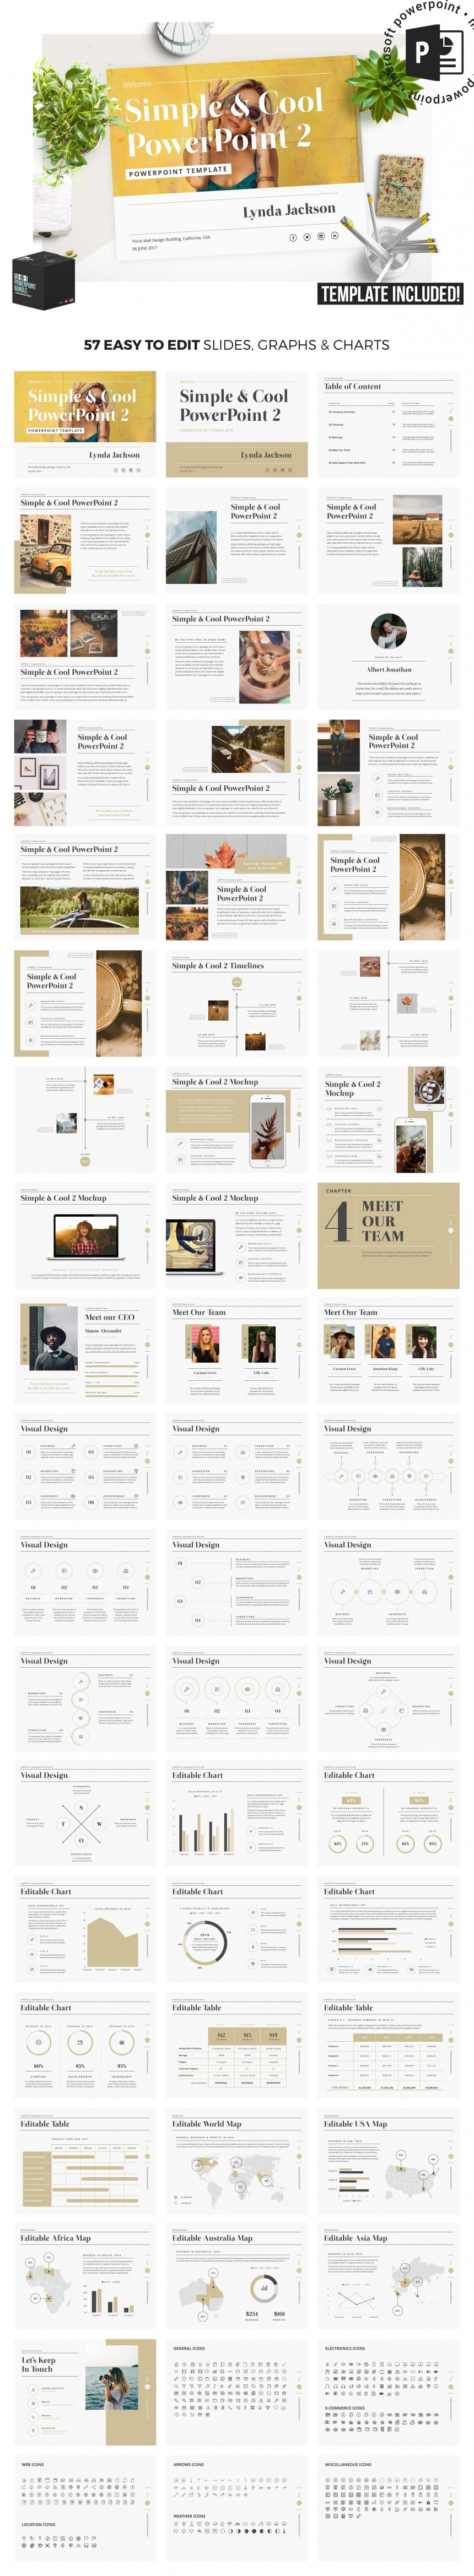 10 creative and professional powerpoint templates plus bonuses simple cool powerpoint template toneelgroepblik Image collections